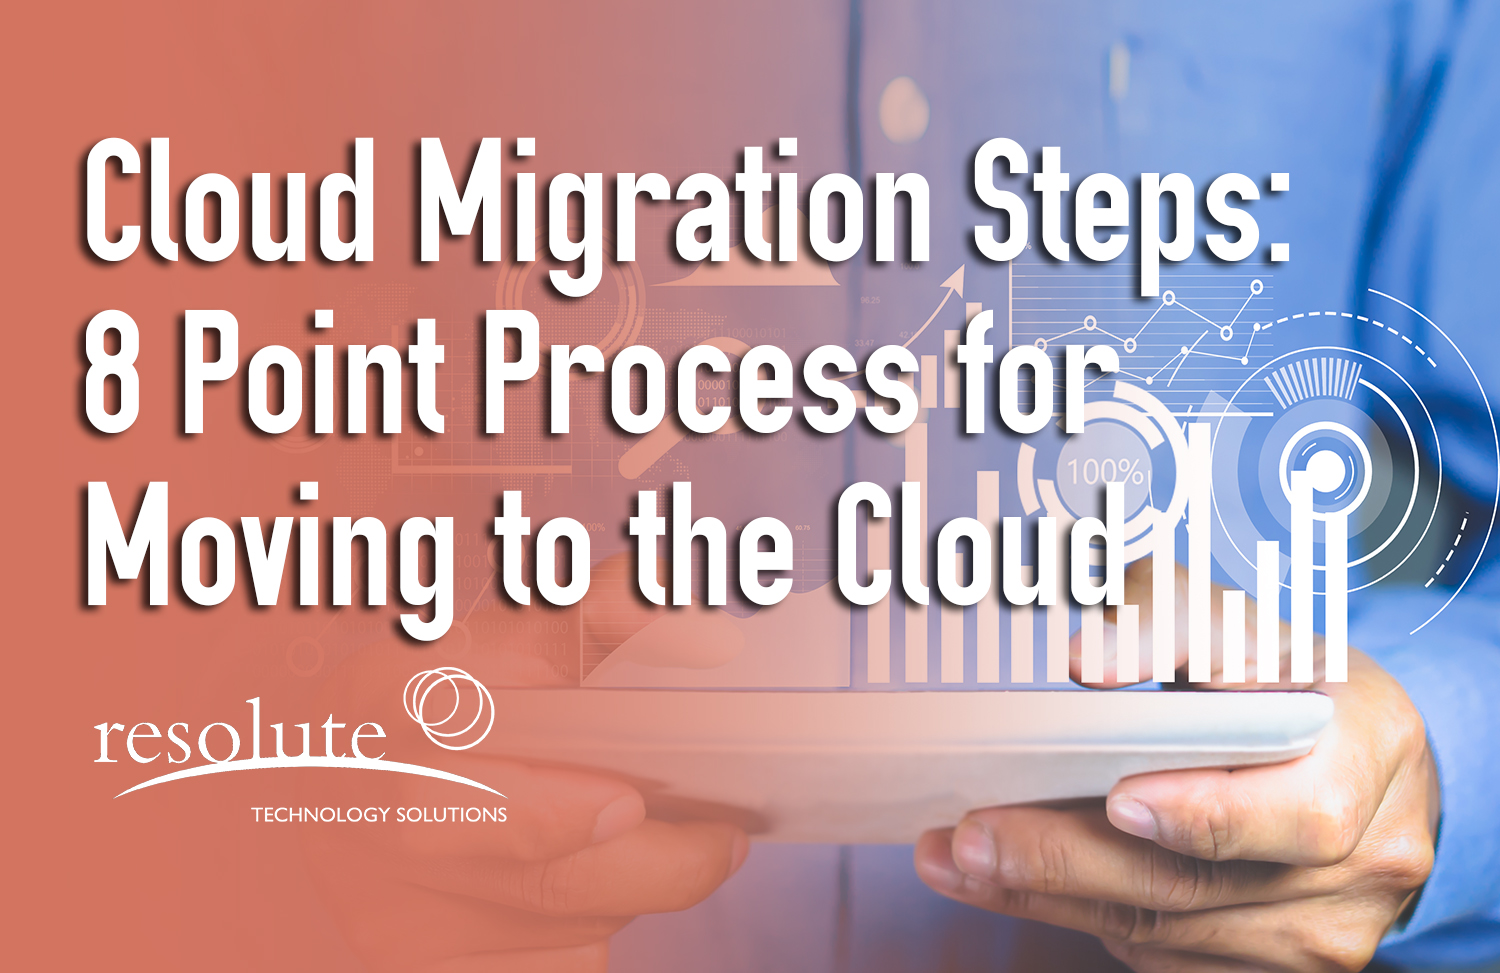 8 Cloud Migration Steps for Moving Applications to the Cloud